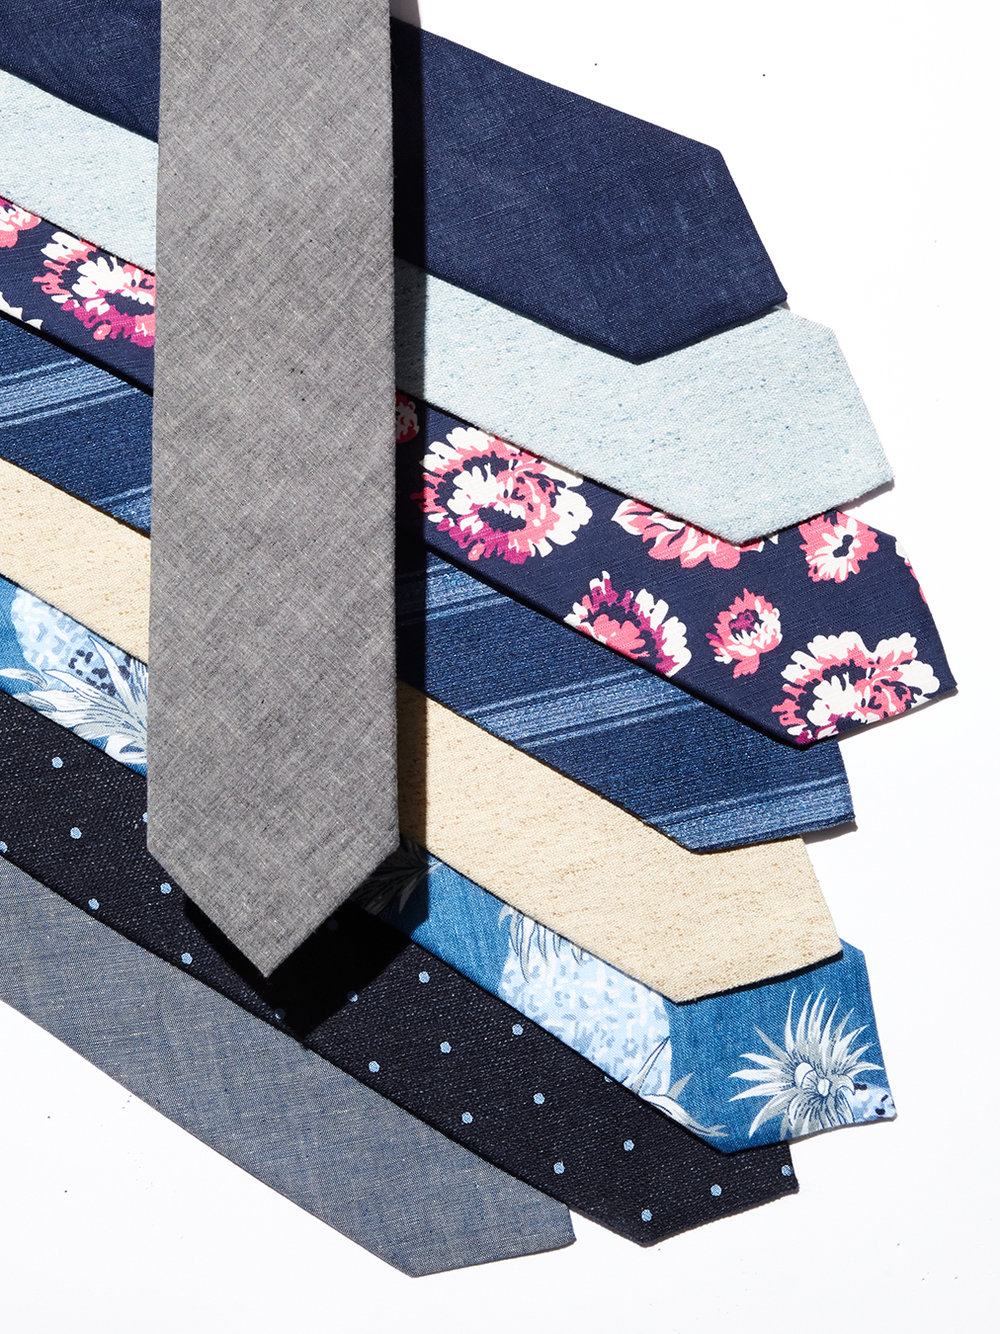 SOCIAL_SU18_Summer-Fabric-Ties_163.jpg